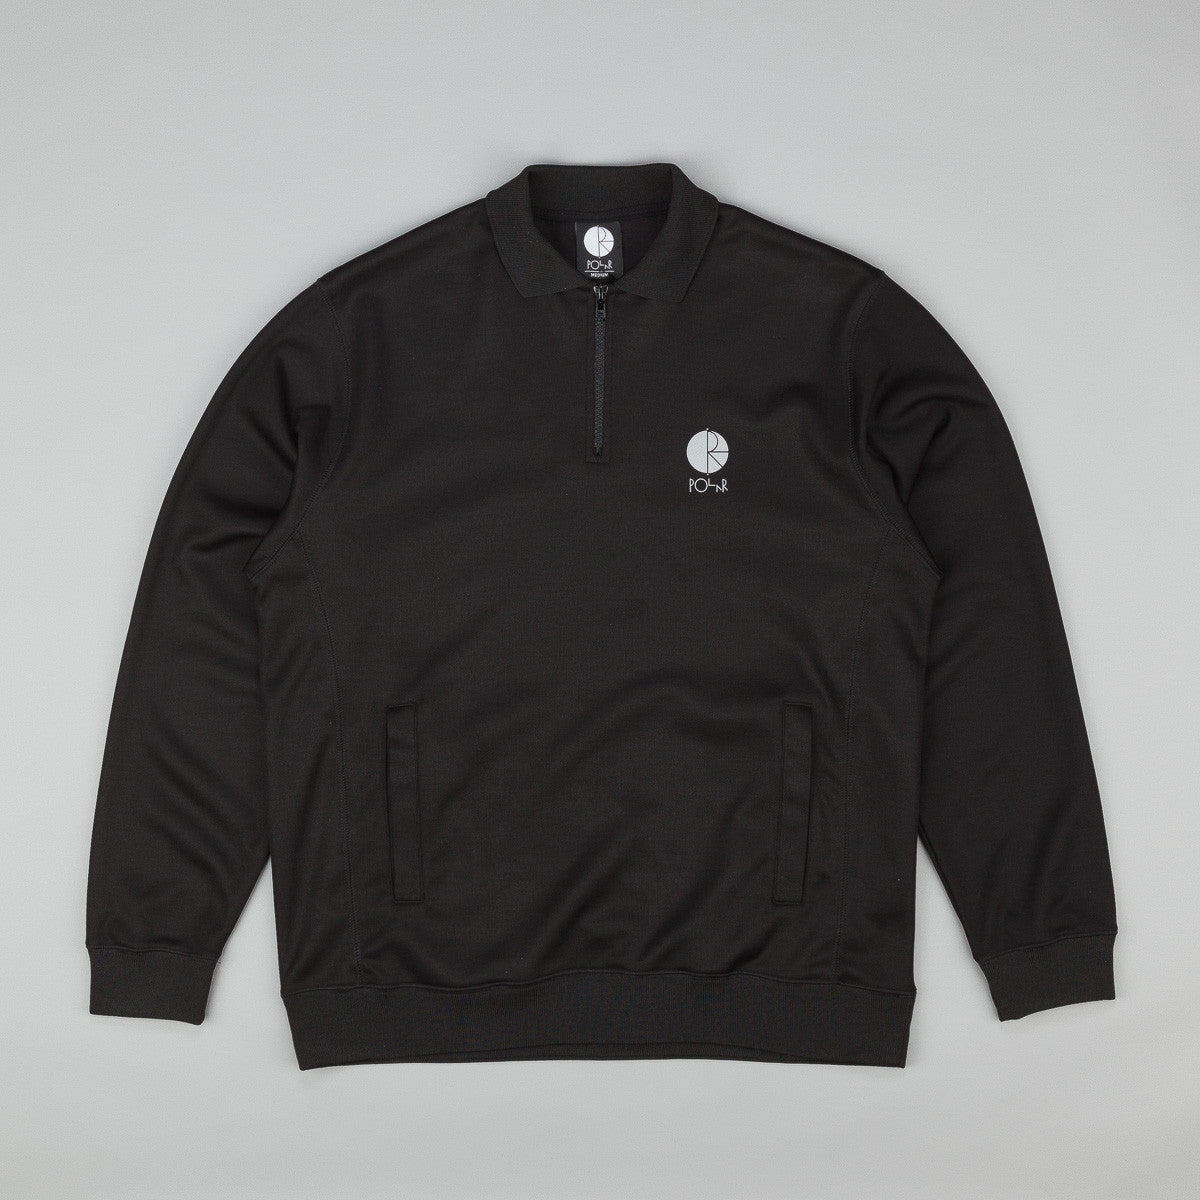 Polar Half Zip Sweatshirt - Black